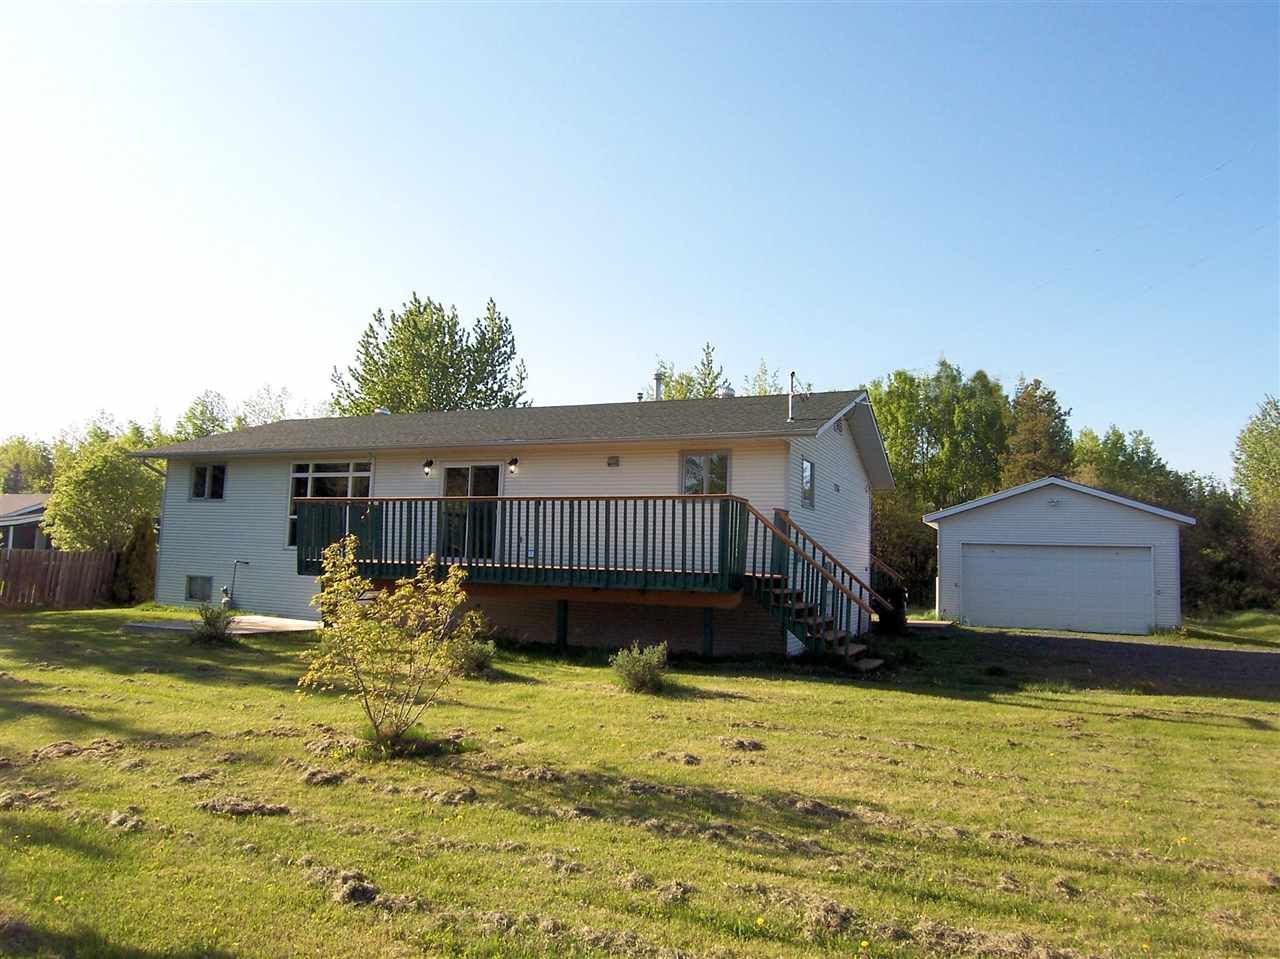 "Main Photo: 7738 GISCOME Road in Prince George: North Blackburn House for sale in ""BLACKBURN/GISCOME RD"" (PG City South East (Zone 75))  : MLS®# R2069180"